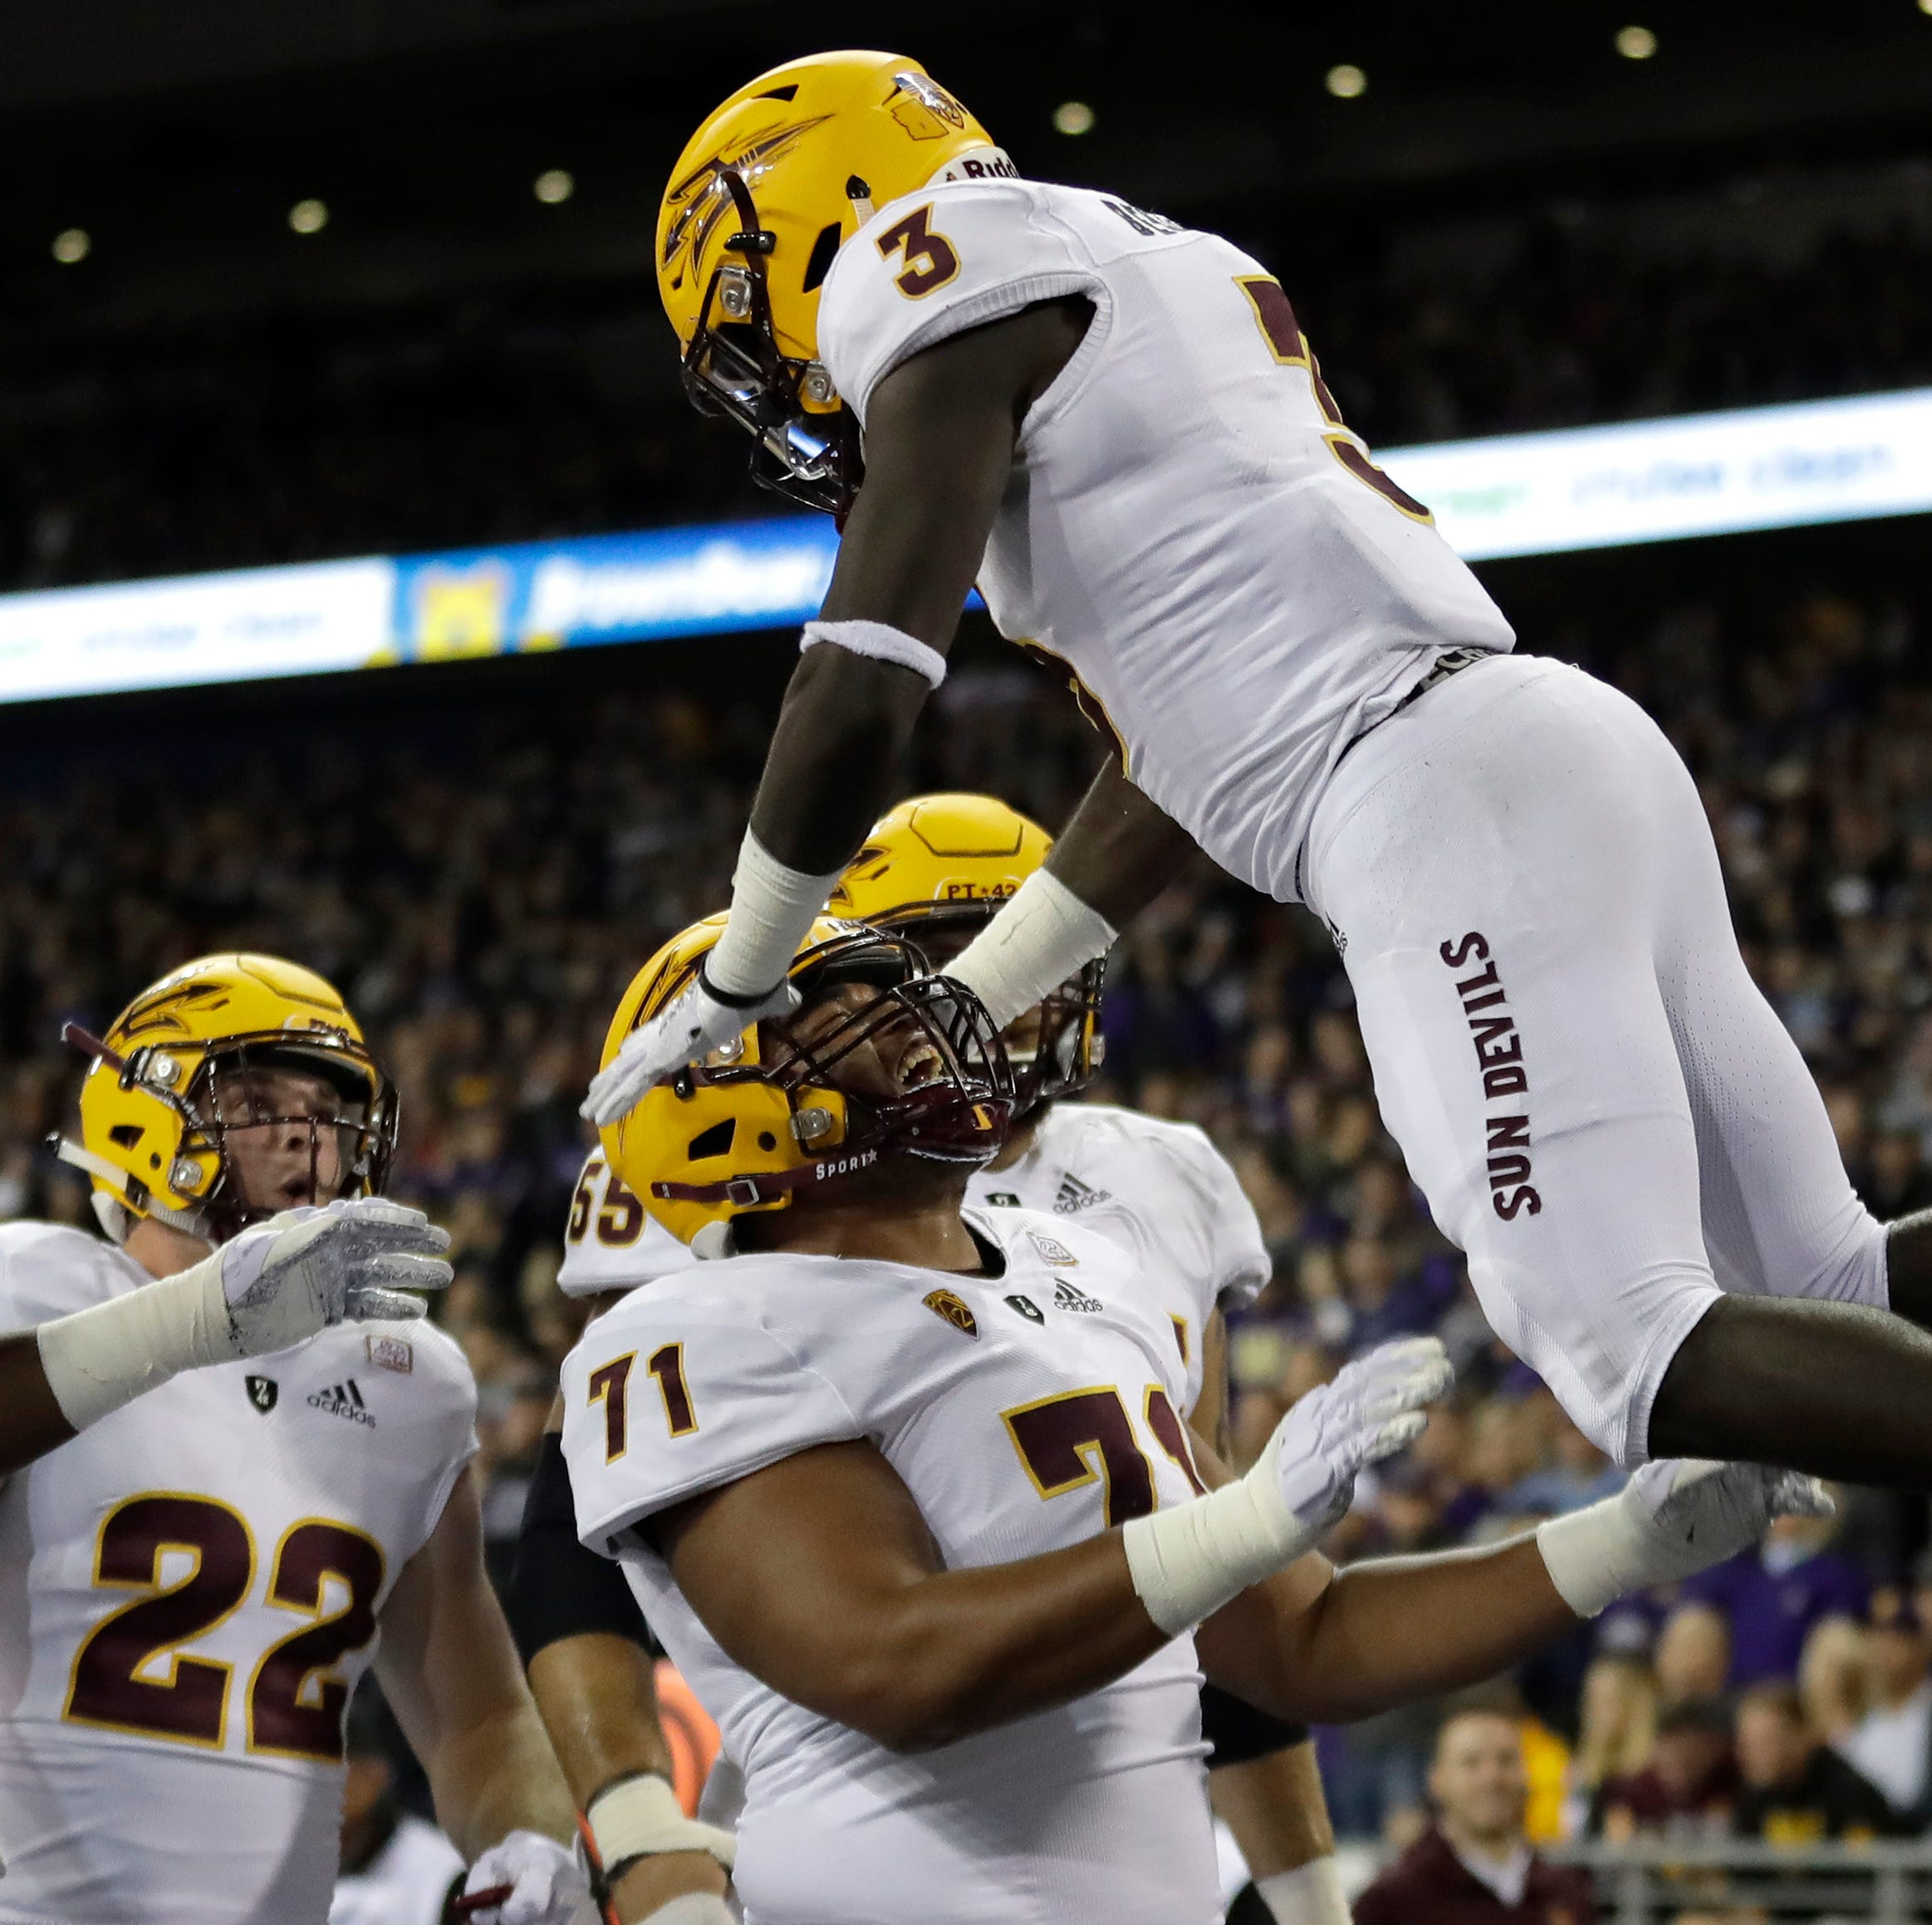 ASU football rewind: Takeaways, grades, stats and analysis from loss at Washington